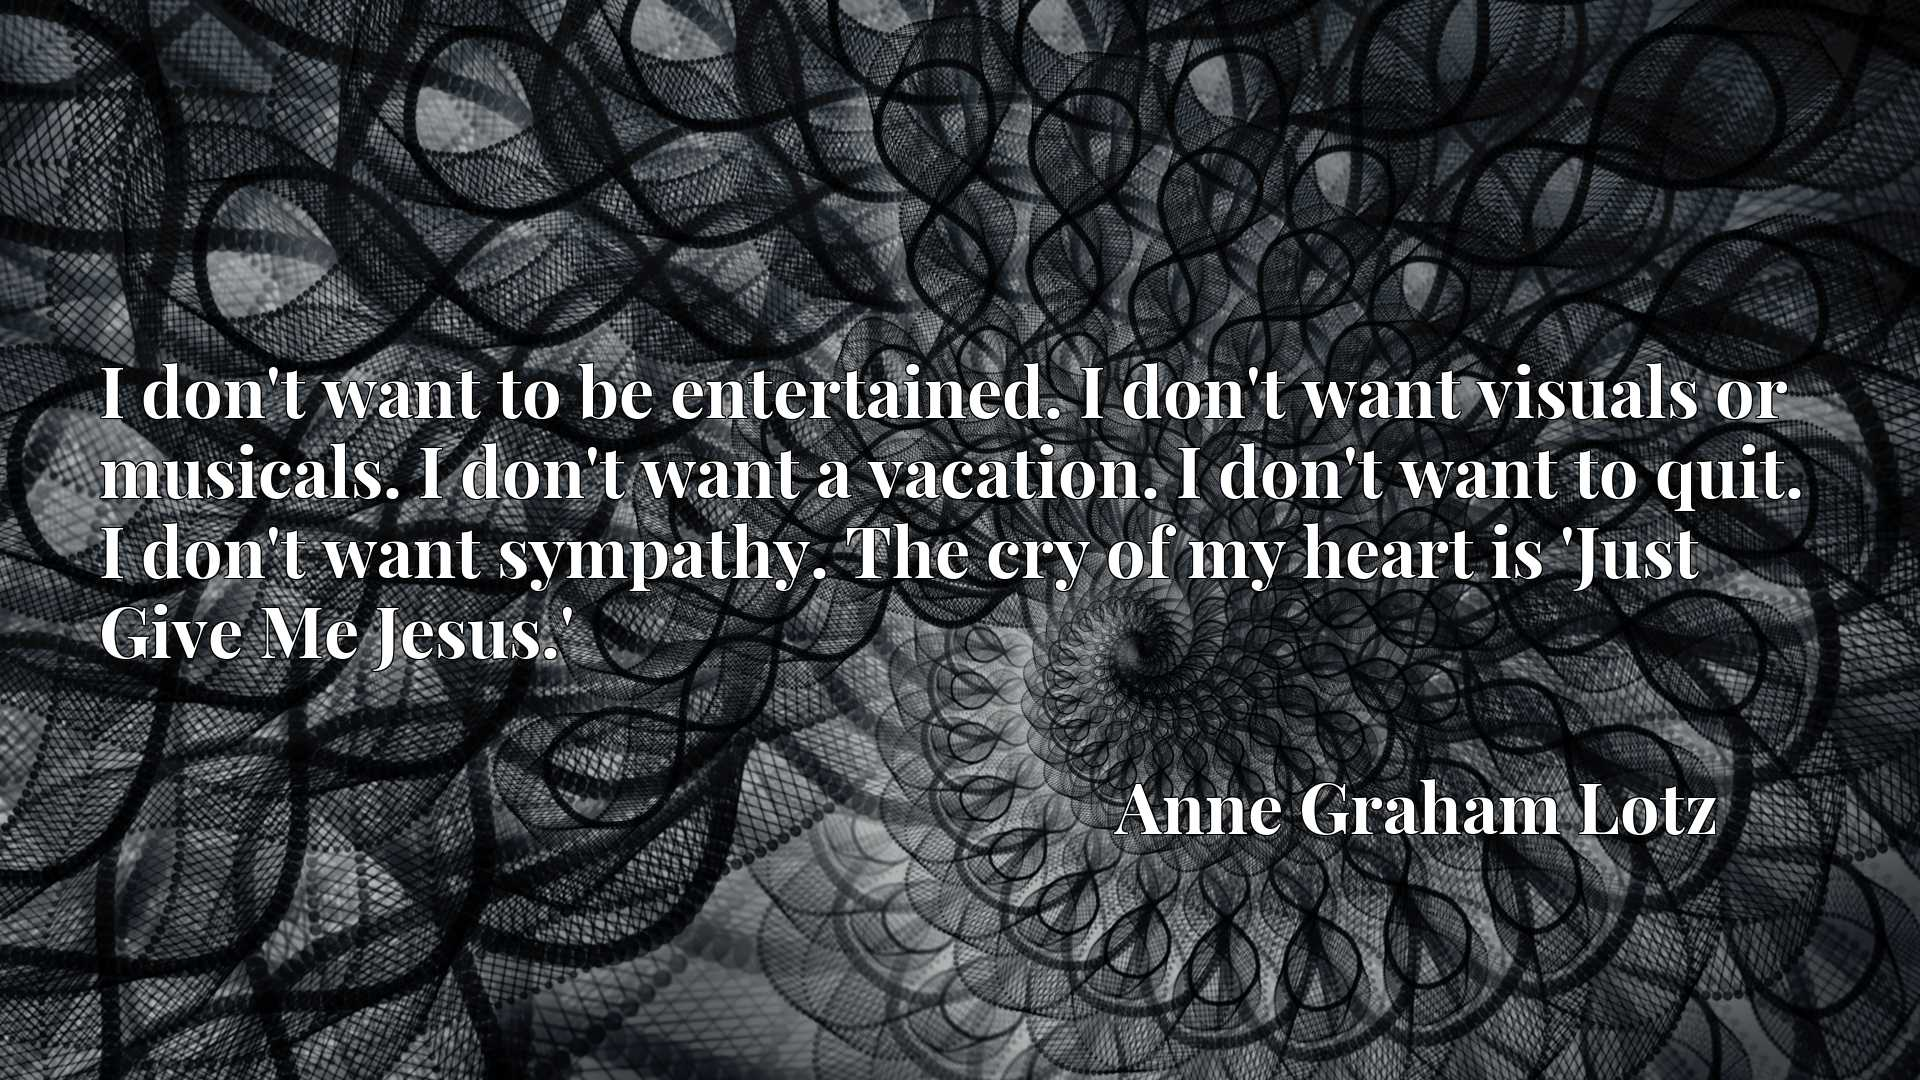 I don't want to be entertained. I don't want visuals or musicals. I don't want a vacation. I don't want to quit. I don't want sympathy. The cry of my heart is 'Just Give Me Jesus.'